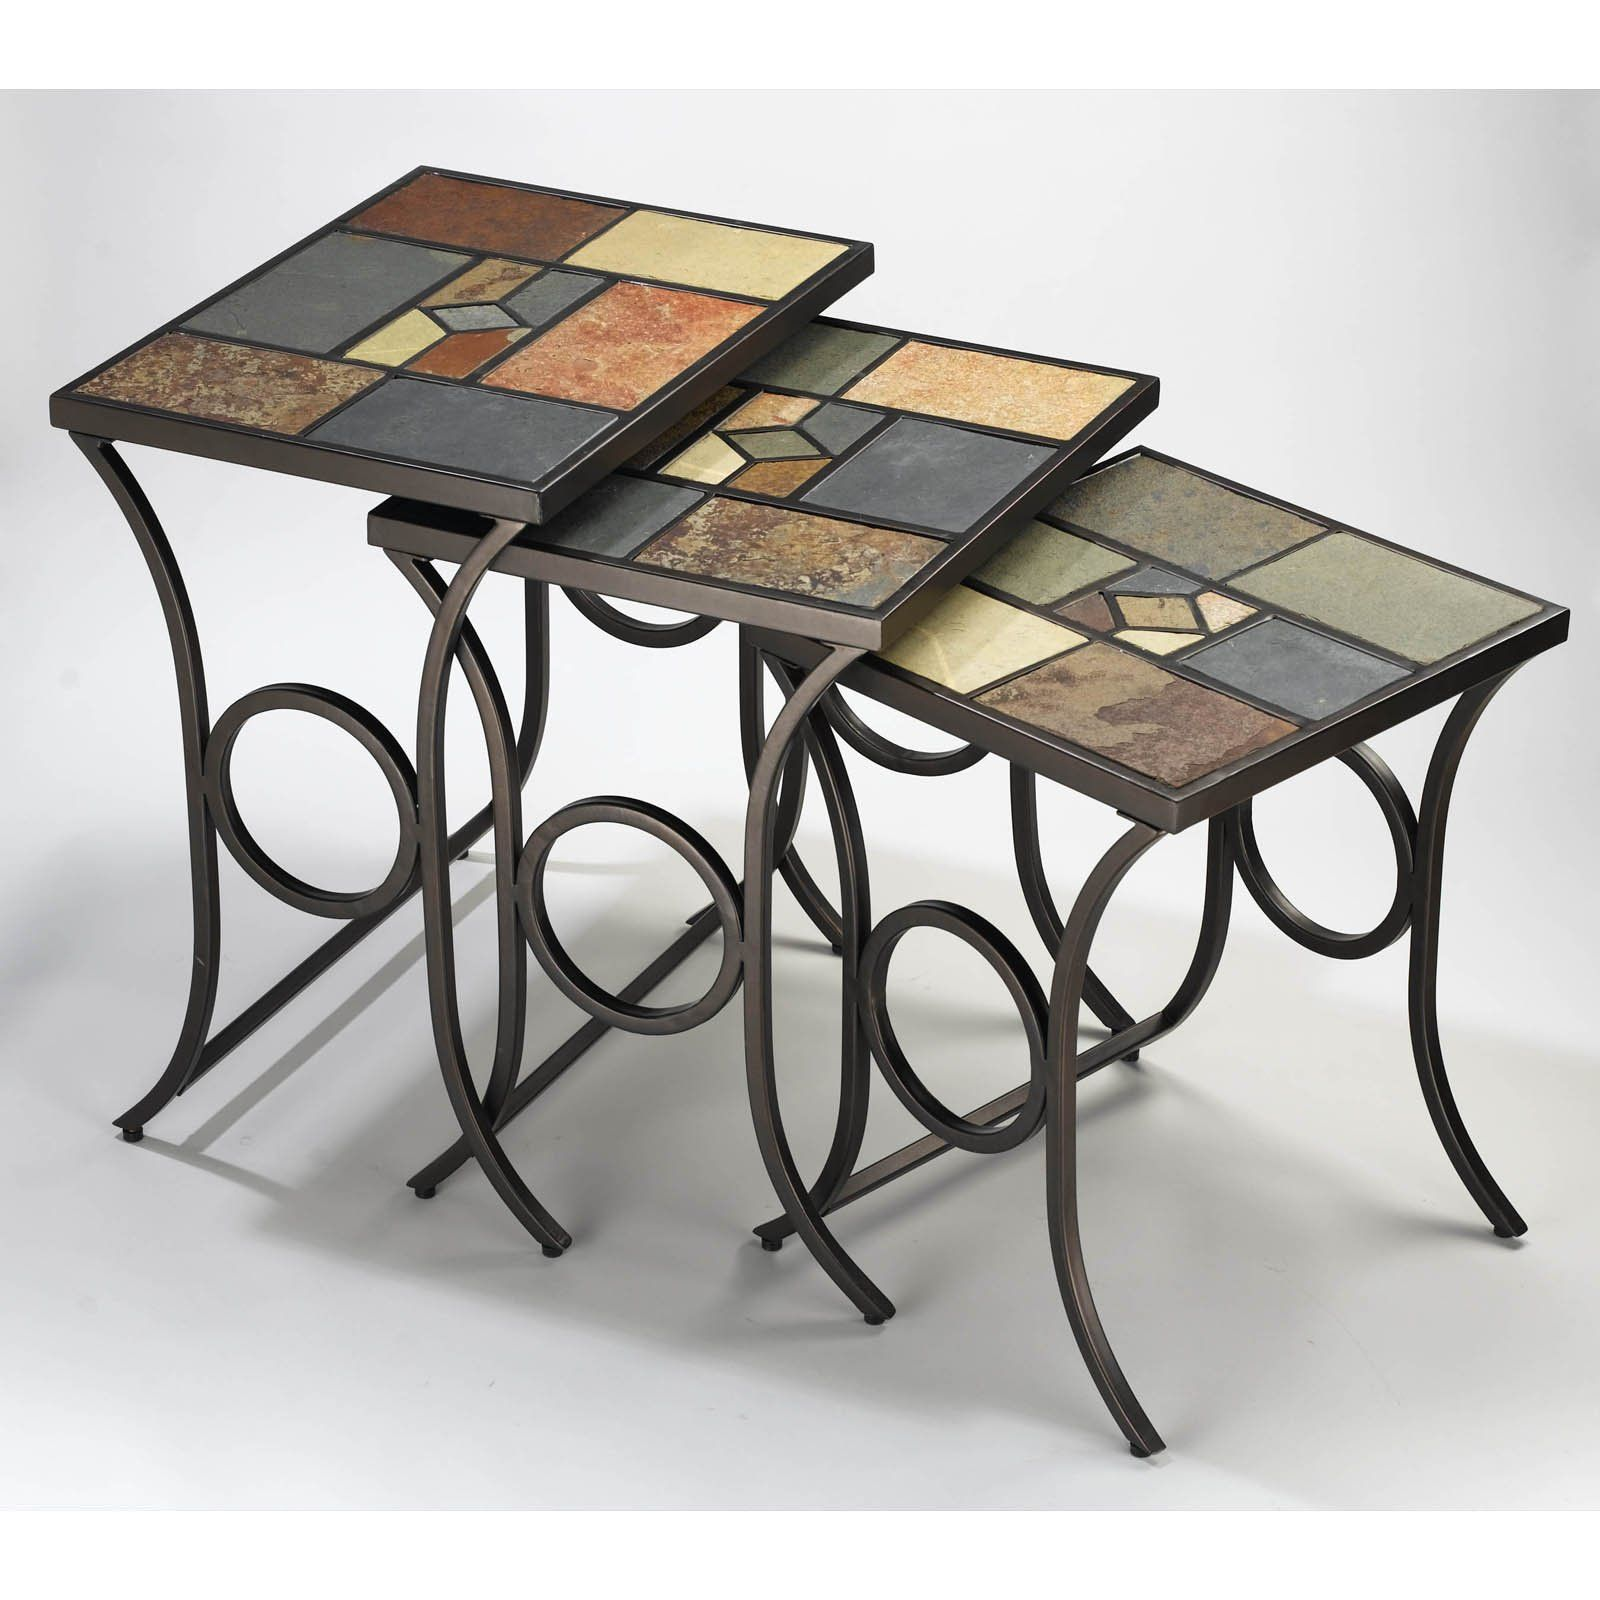 have hillsdale pompei nesting tables for the mosaic accent table kohls garden bench bunnings butler desk furniture union jack target vases square side counter height bedside ideas